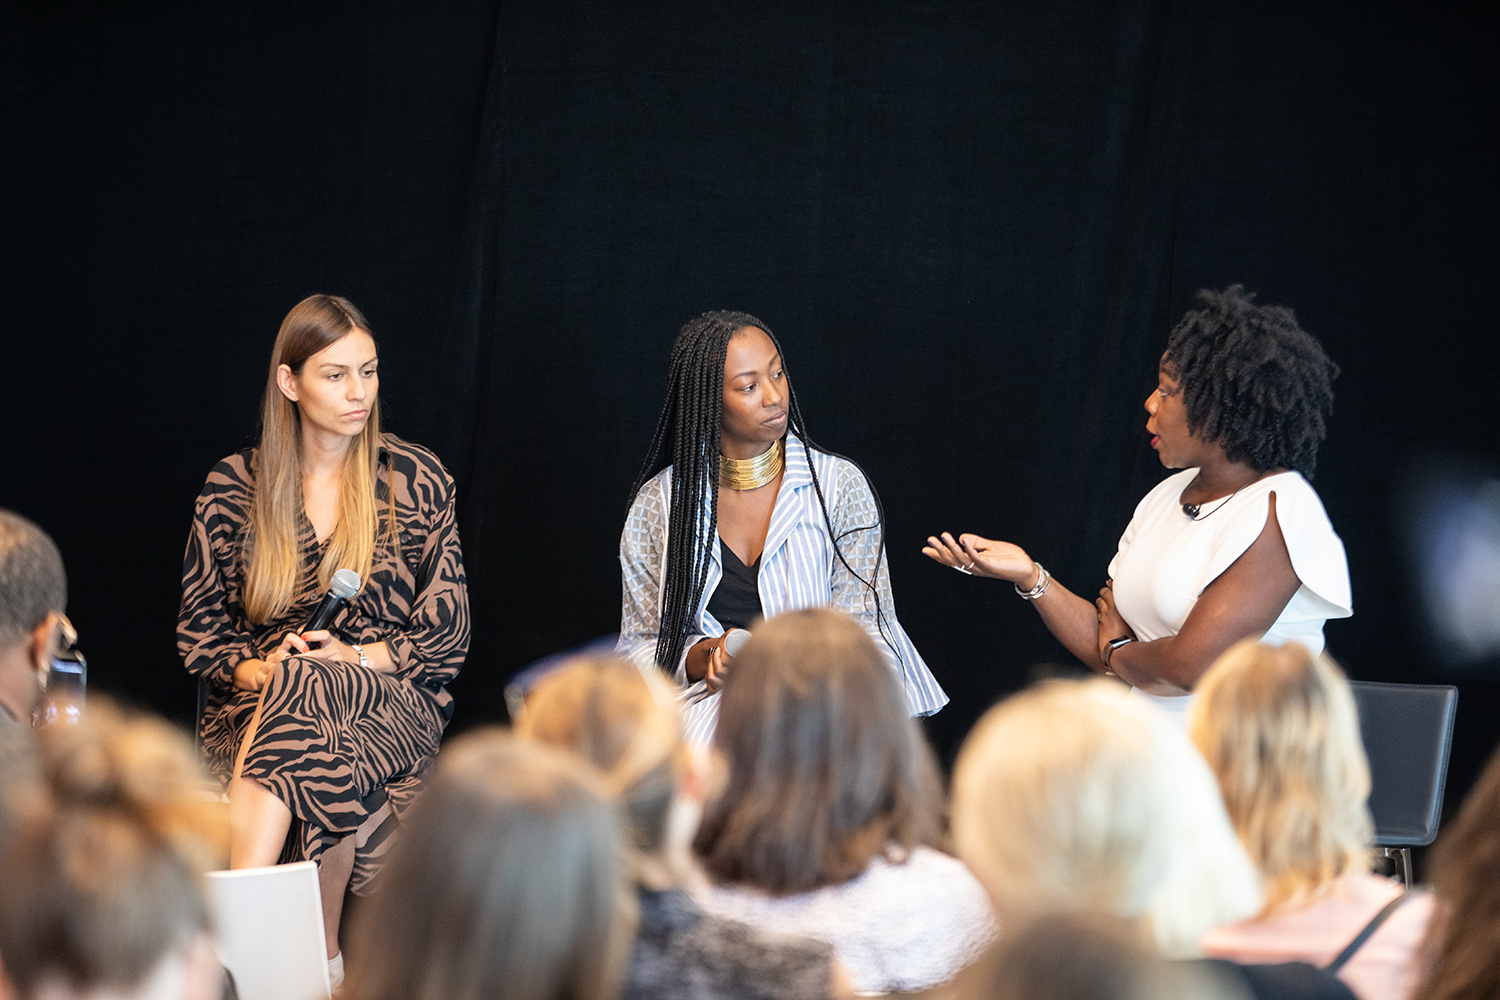 Executives from brands like Sephora, Glossier, Mary Kay, and Violet Grey joined LRW Group leadership in a powerful conversation that examined where the industry is today, where it is going, and more.